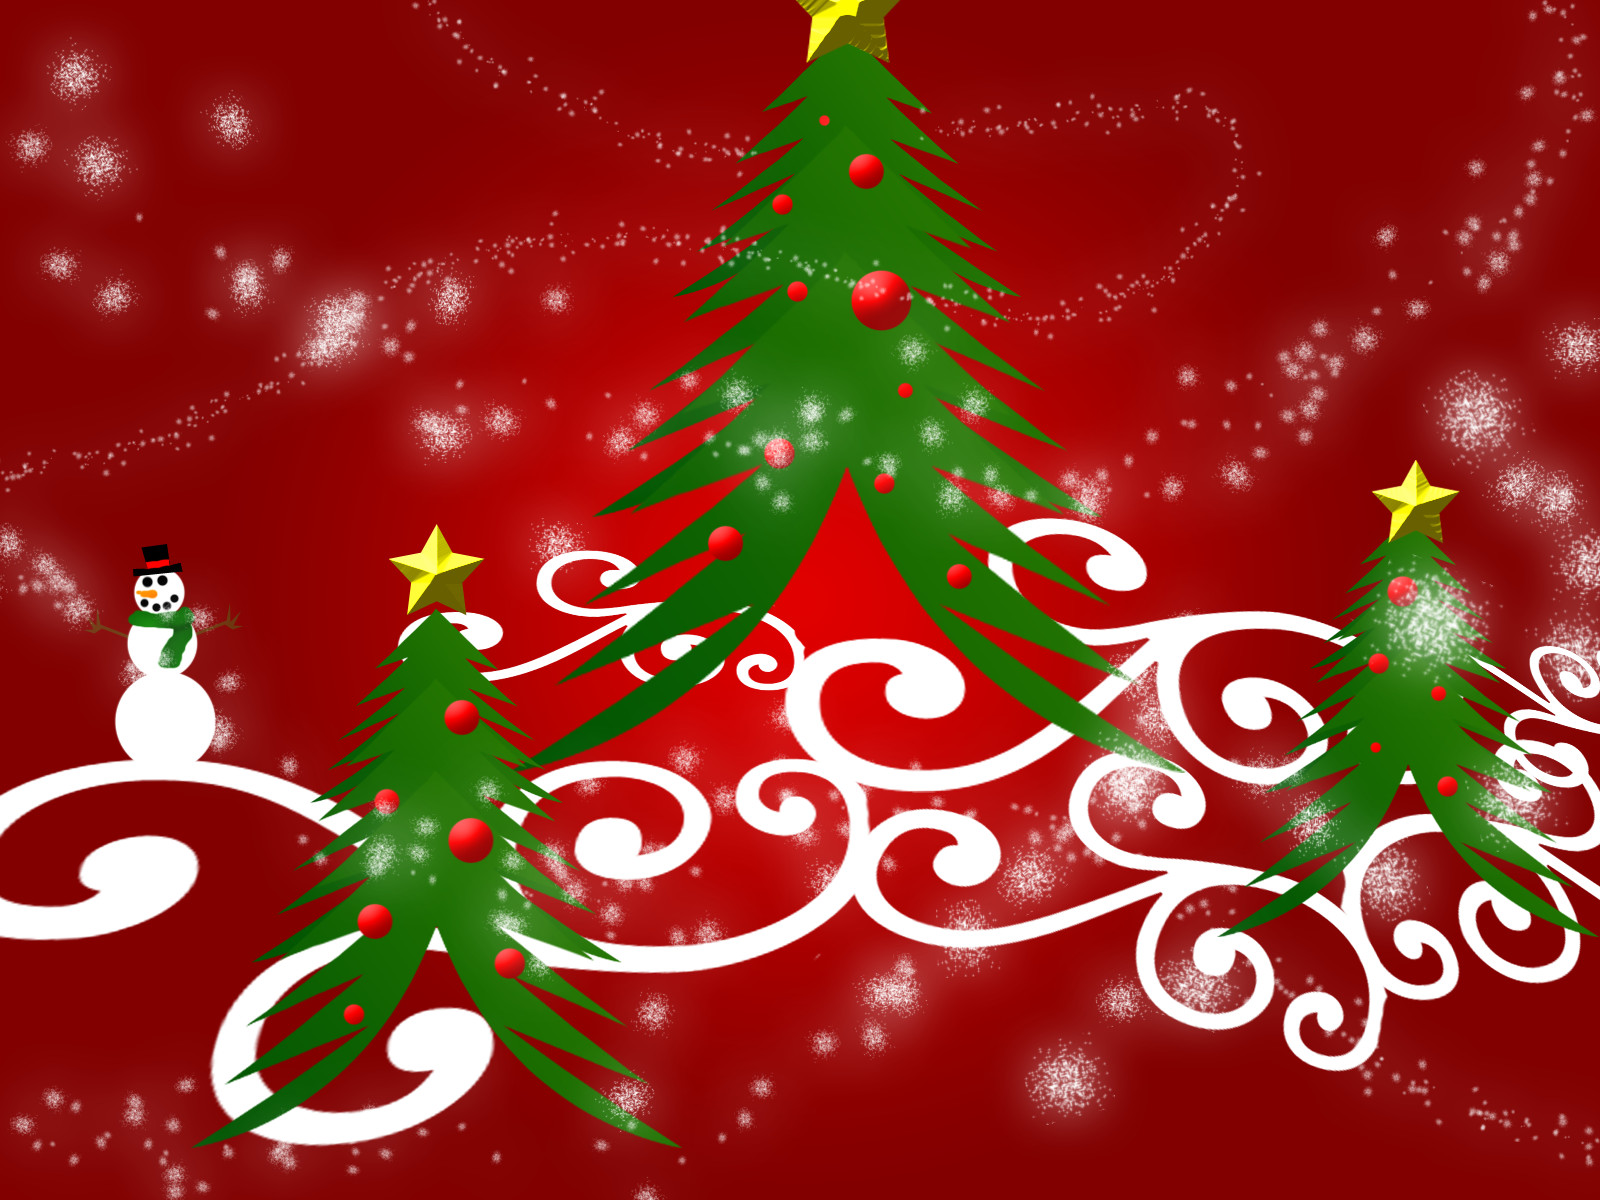 free animated christmas fireplace wallpaper - Free Animated Christmas Wallpaper